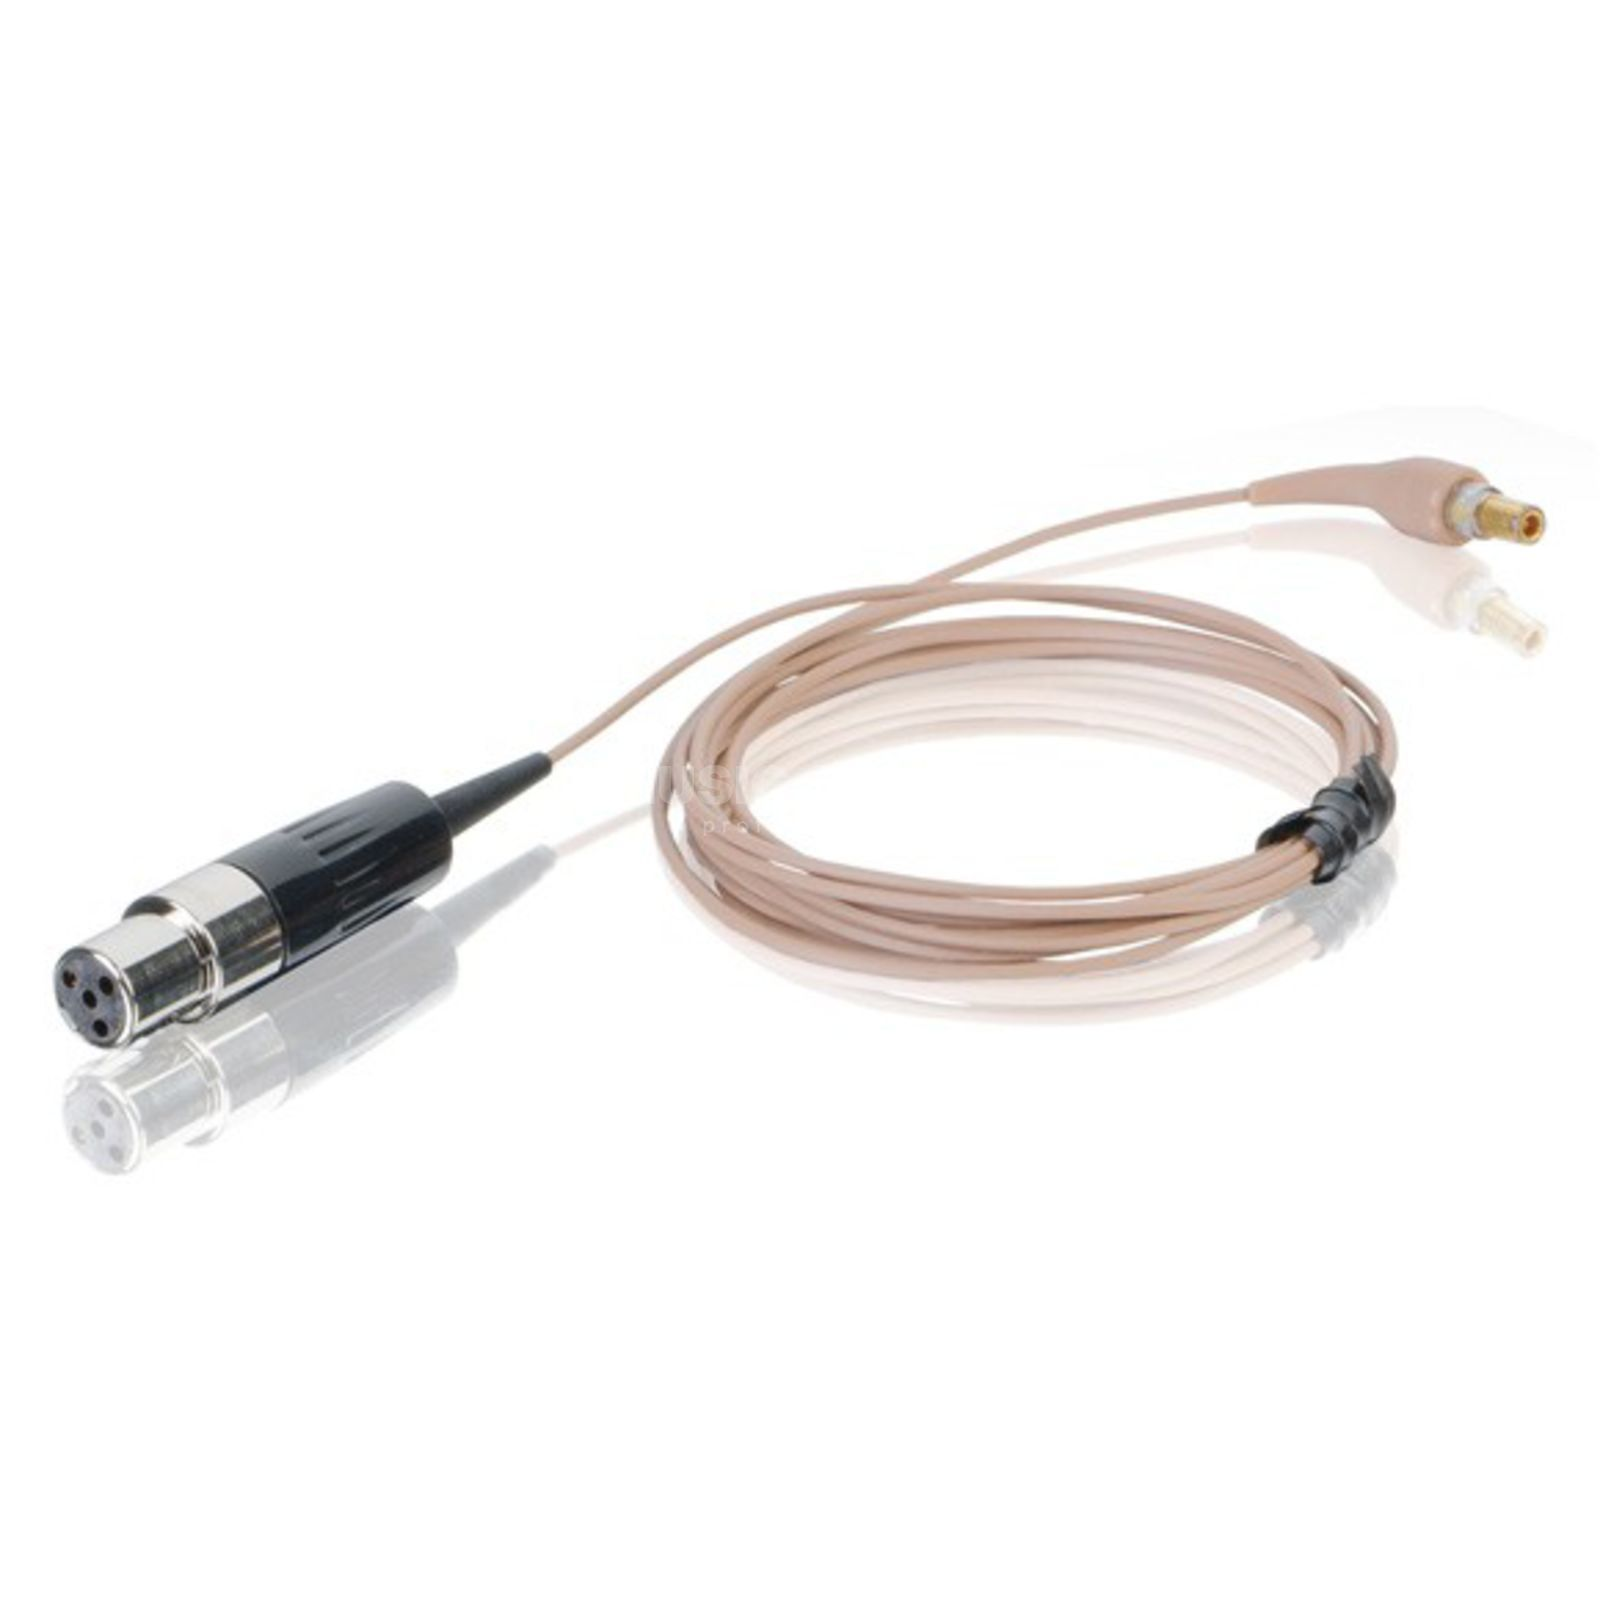 Country Man H6 Cable beige with TA4F Plug (Tiny QG) Produktbillede